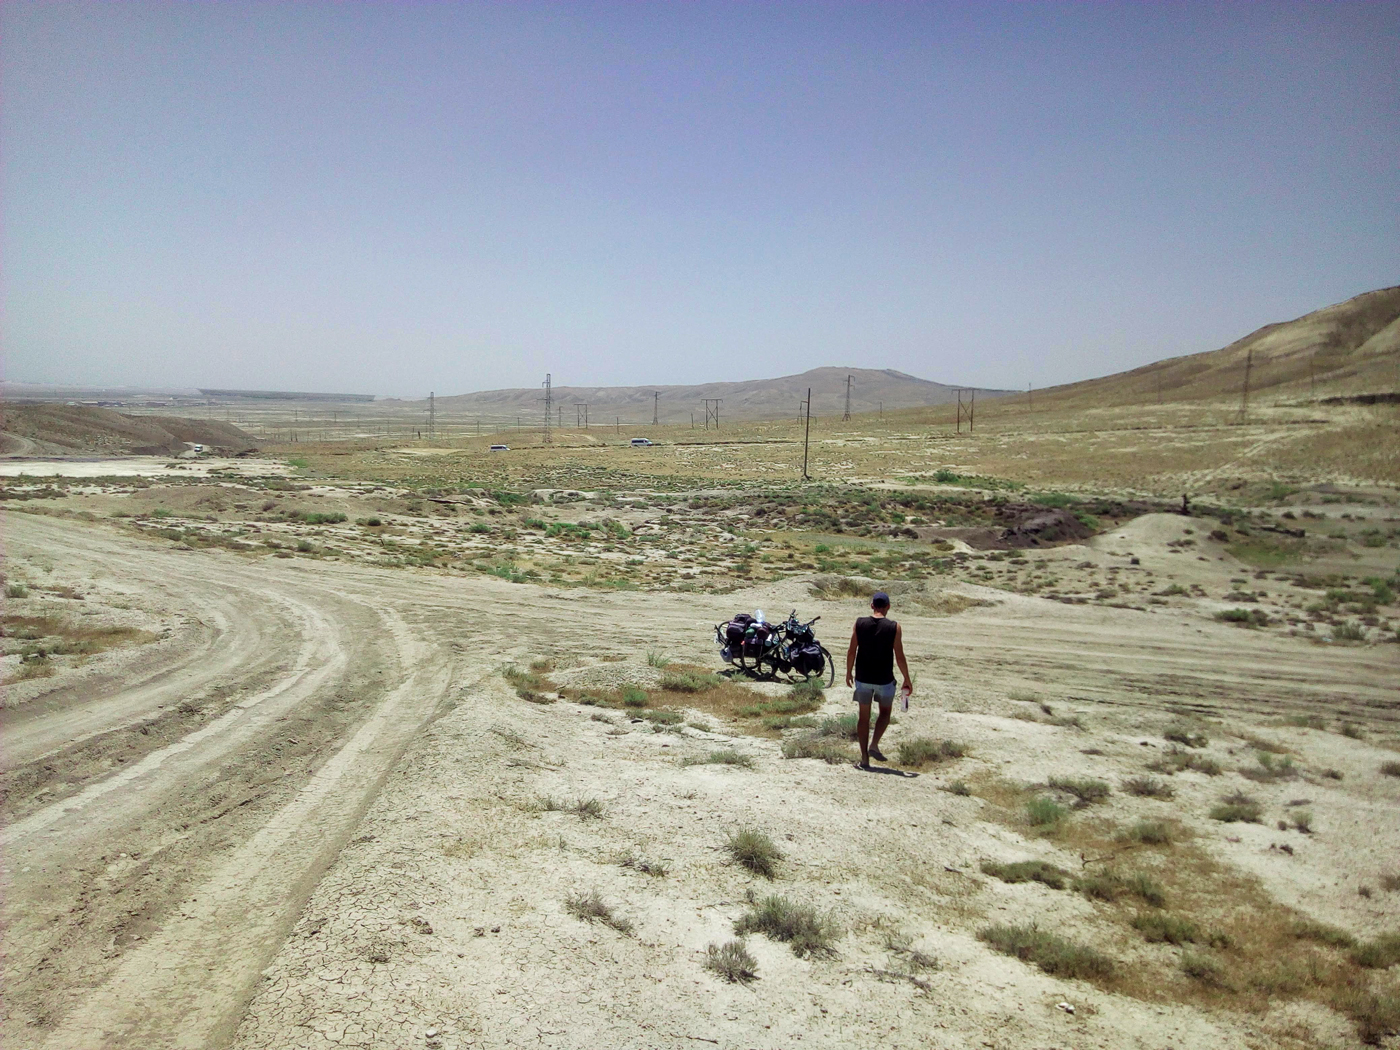 Cycling, Azerbaijan Cycling, crossing the Caucasus region by bike, road near the Gobustan mud volcano. Cycling travel, biketouring, cycling Caucasus, cycling Azerbaijan, road near Gobustan Mud Volcano.